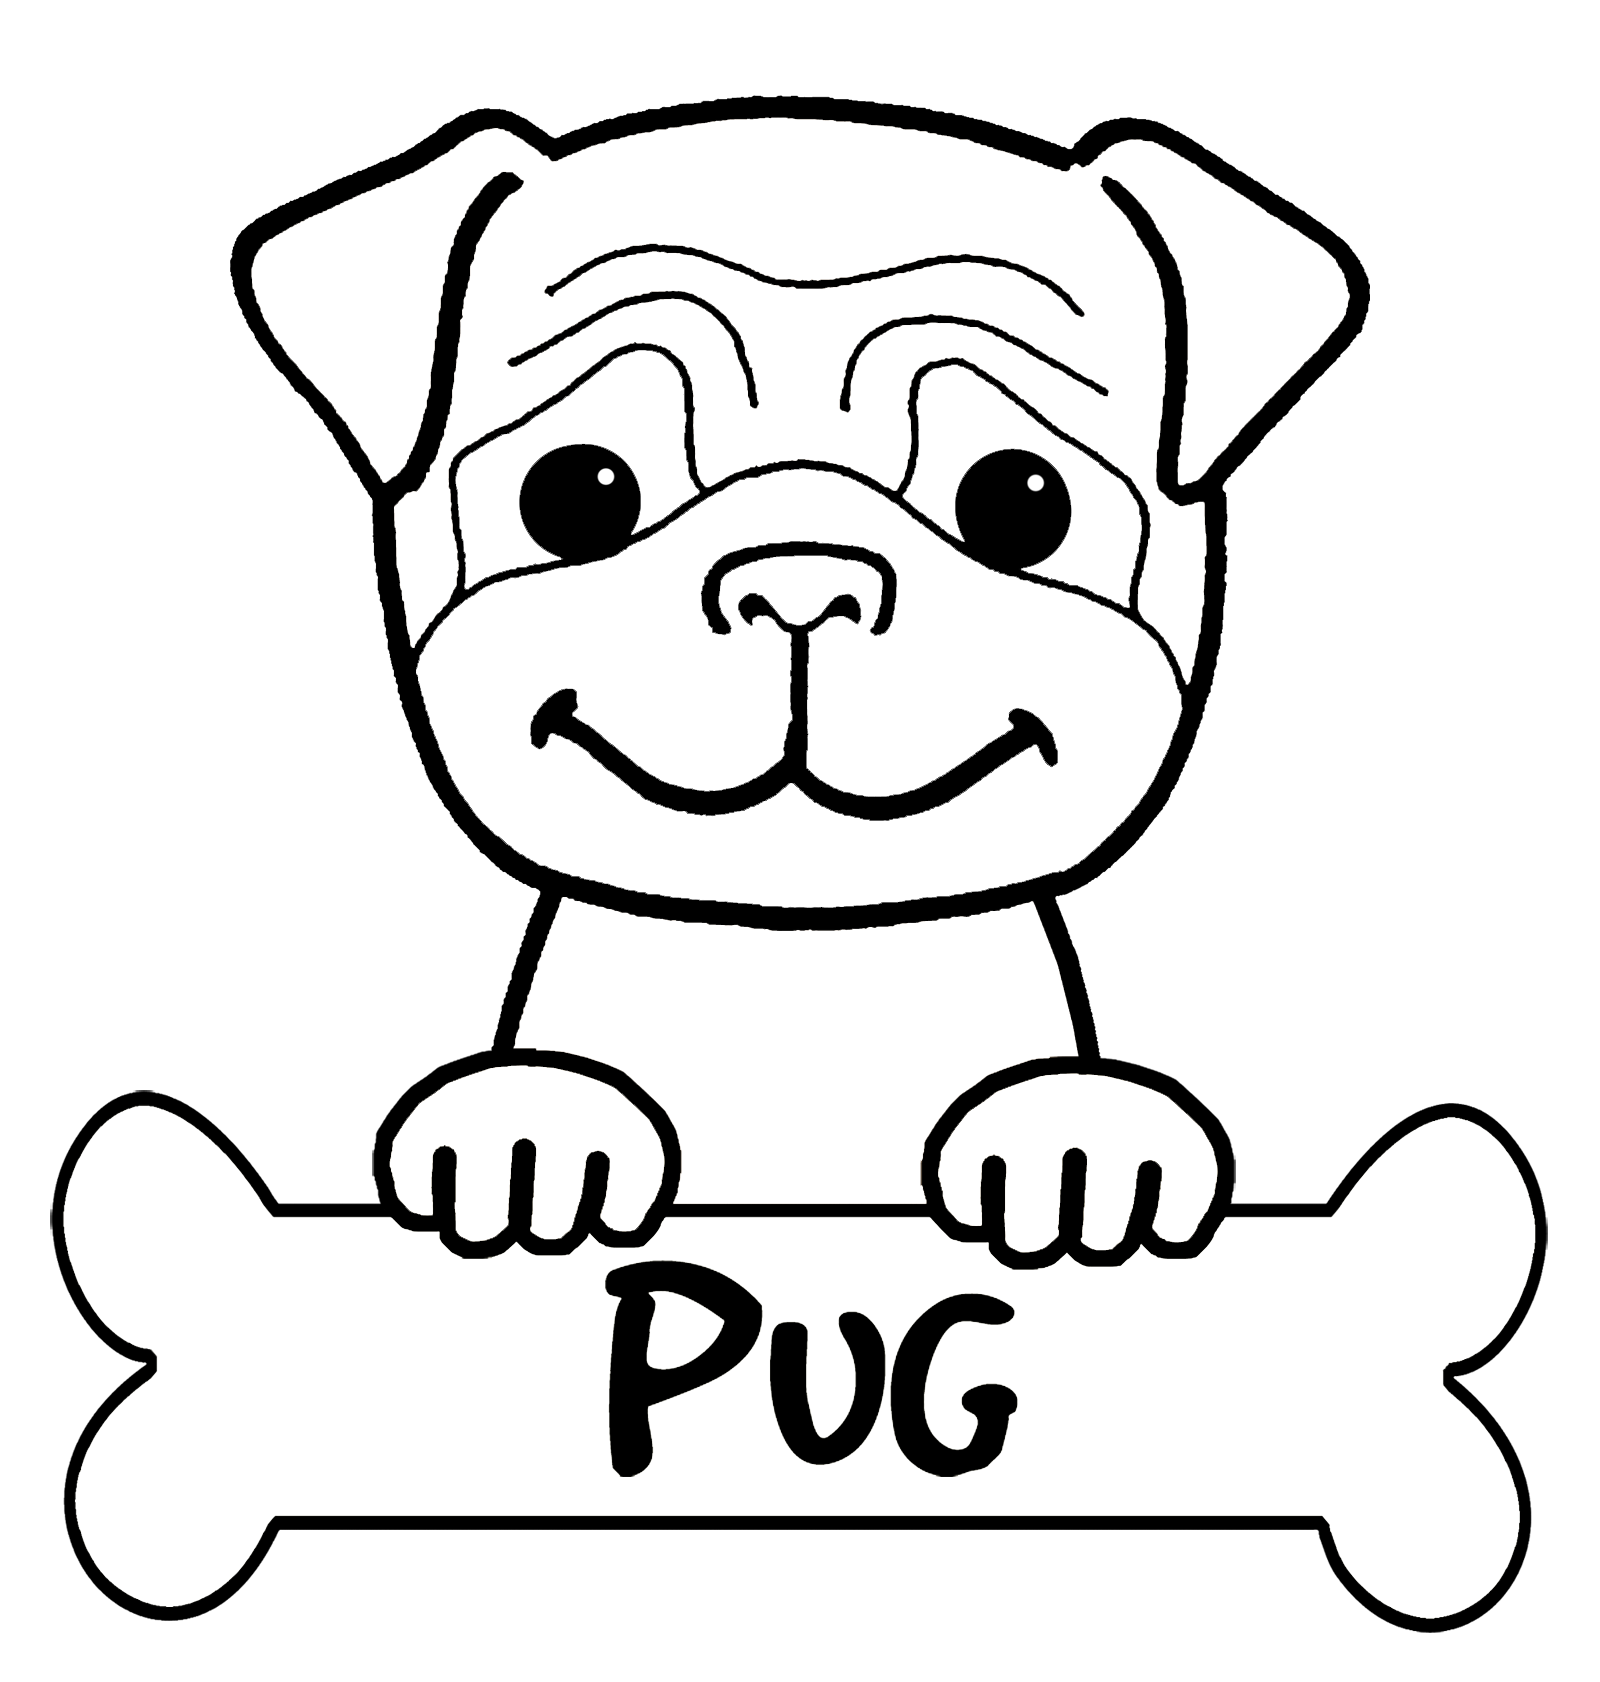 free printable puppy coloring pages designs canvas coloring page